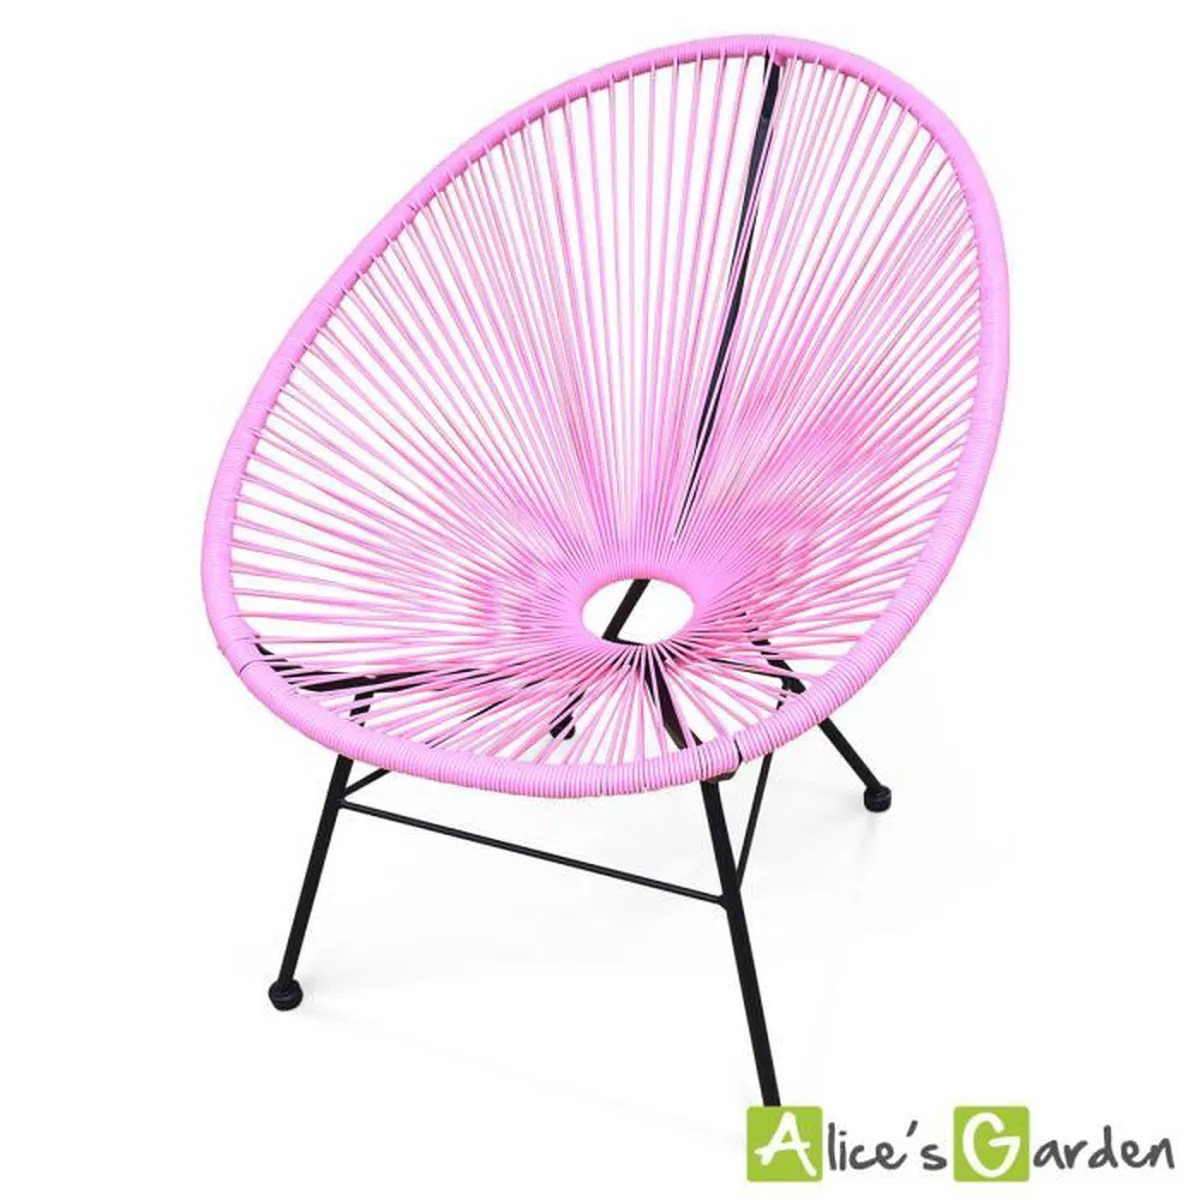 Acapulco Fauteuil Fauteuil Acapulco Chaise Oeuf Design Rétro Cordage Rose Achat